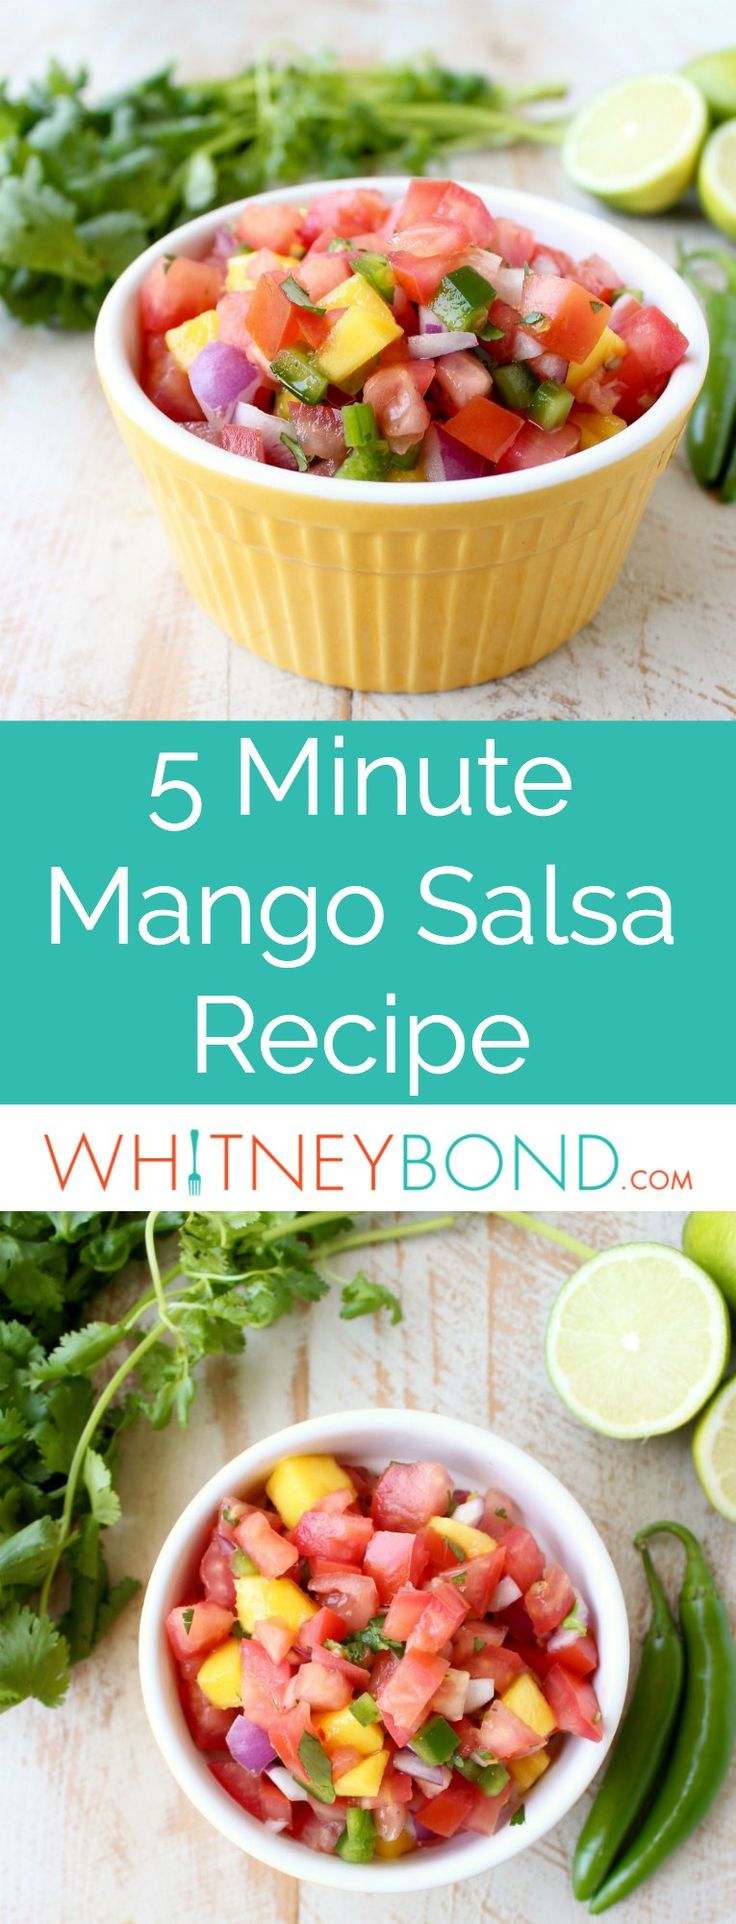 758 best images about trendsetter inspiration on pinterest for Mango salsa recipe for fish